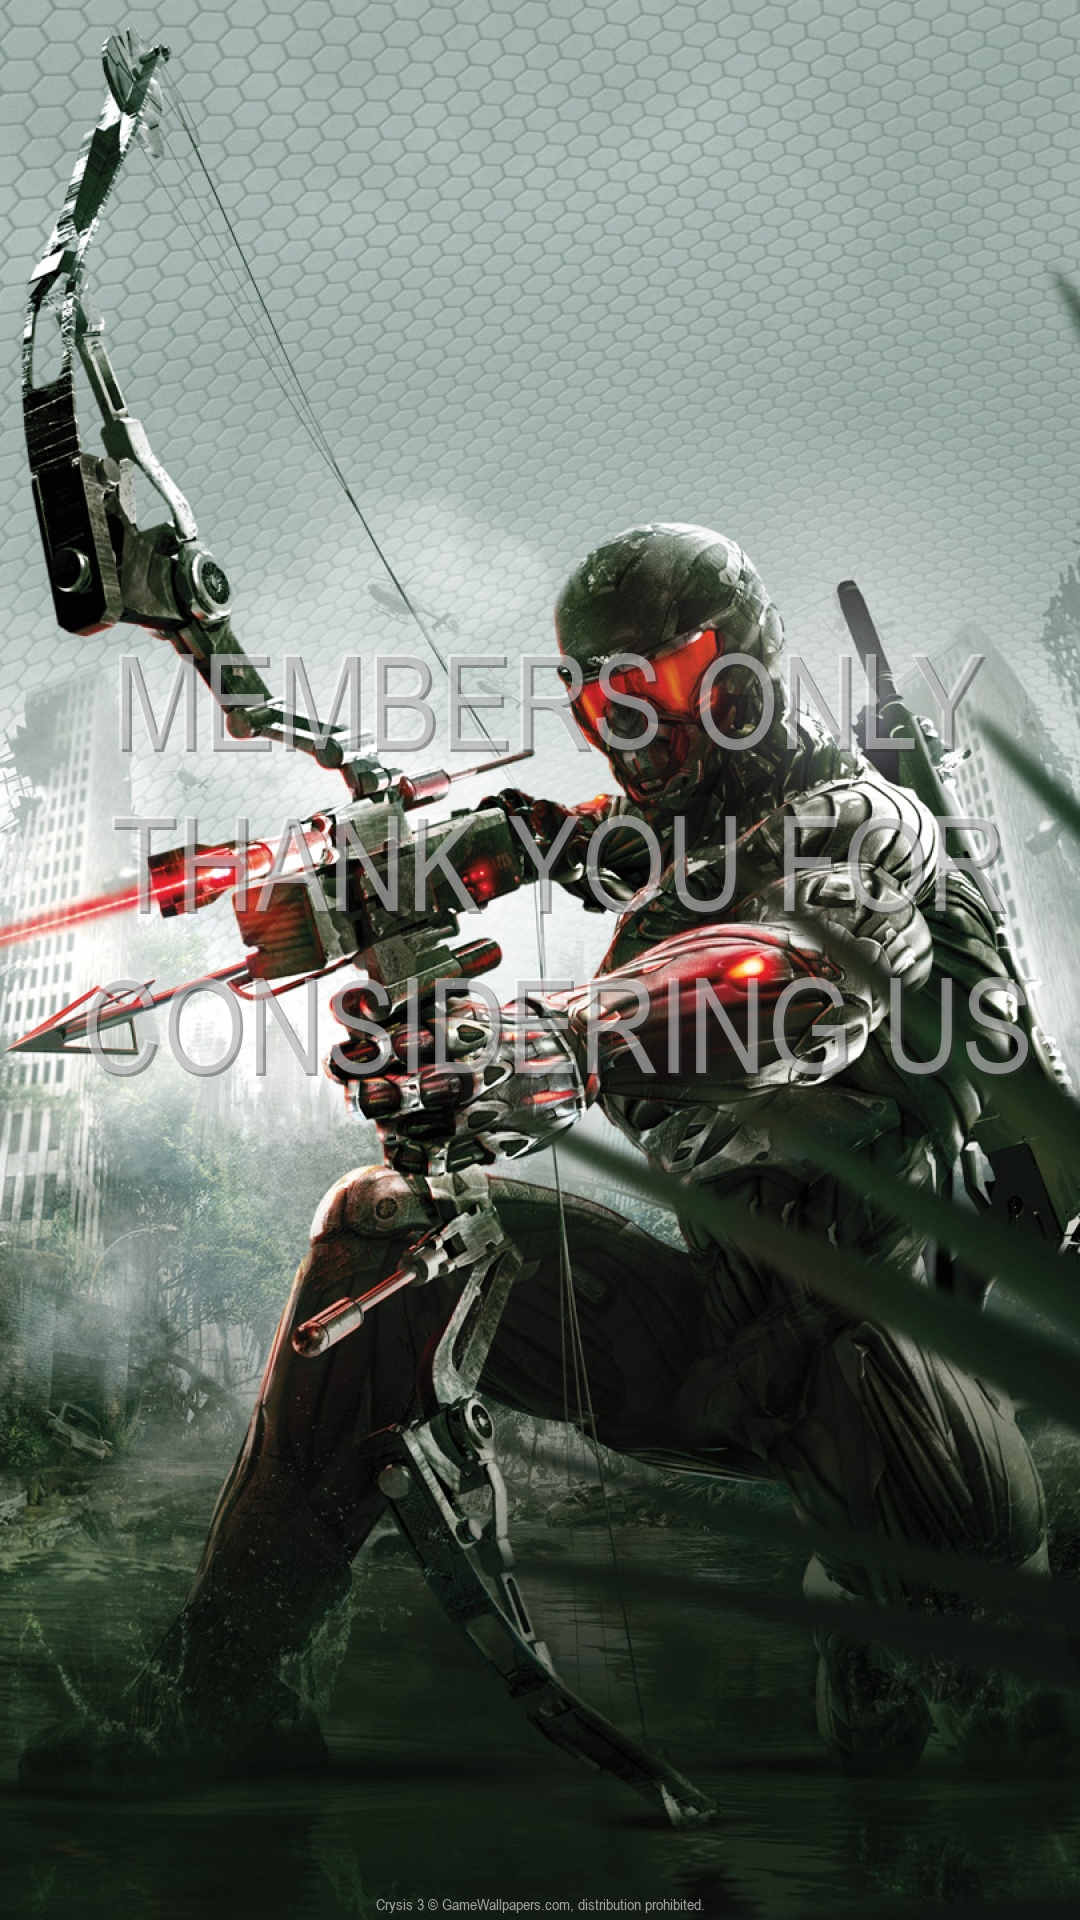 Crysis 3 1920x1080 Mobile wallpaper or background 02